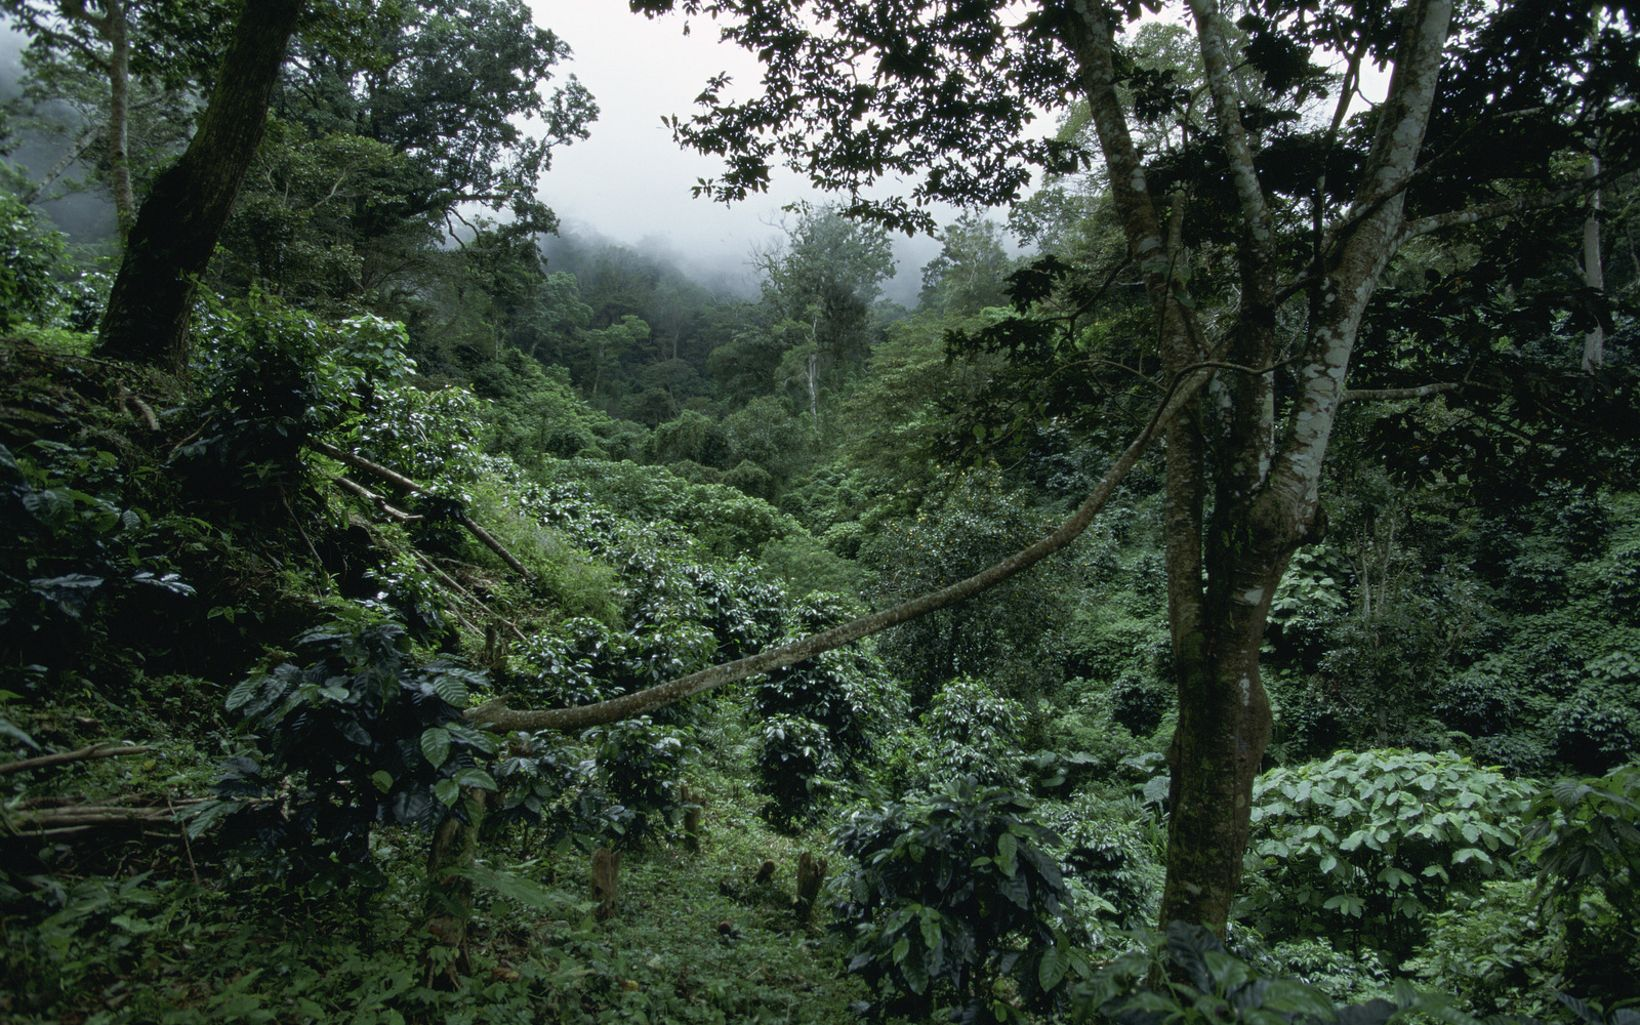 Clouds envelop the forest of the Sierra Madre watershed and Reserva de la Biosfera La Sepultura near Tres Picos and Pijijiapan; Chiapas, Mexico.